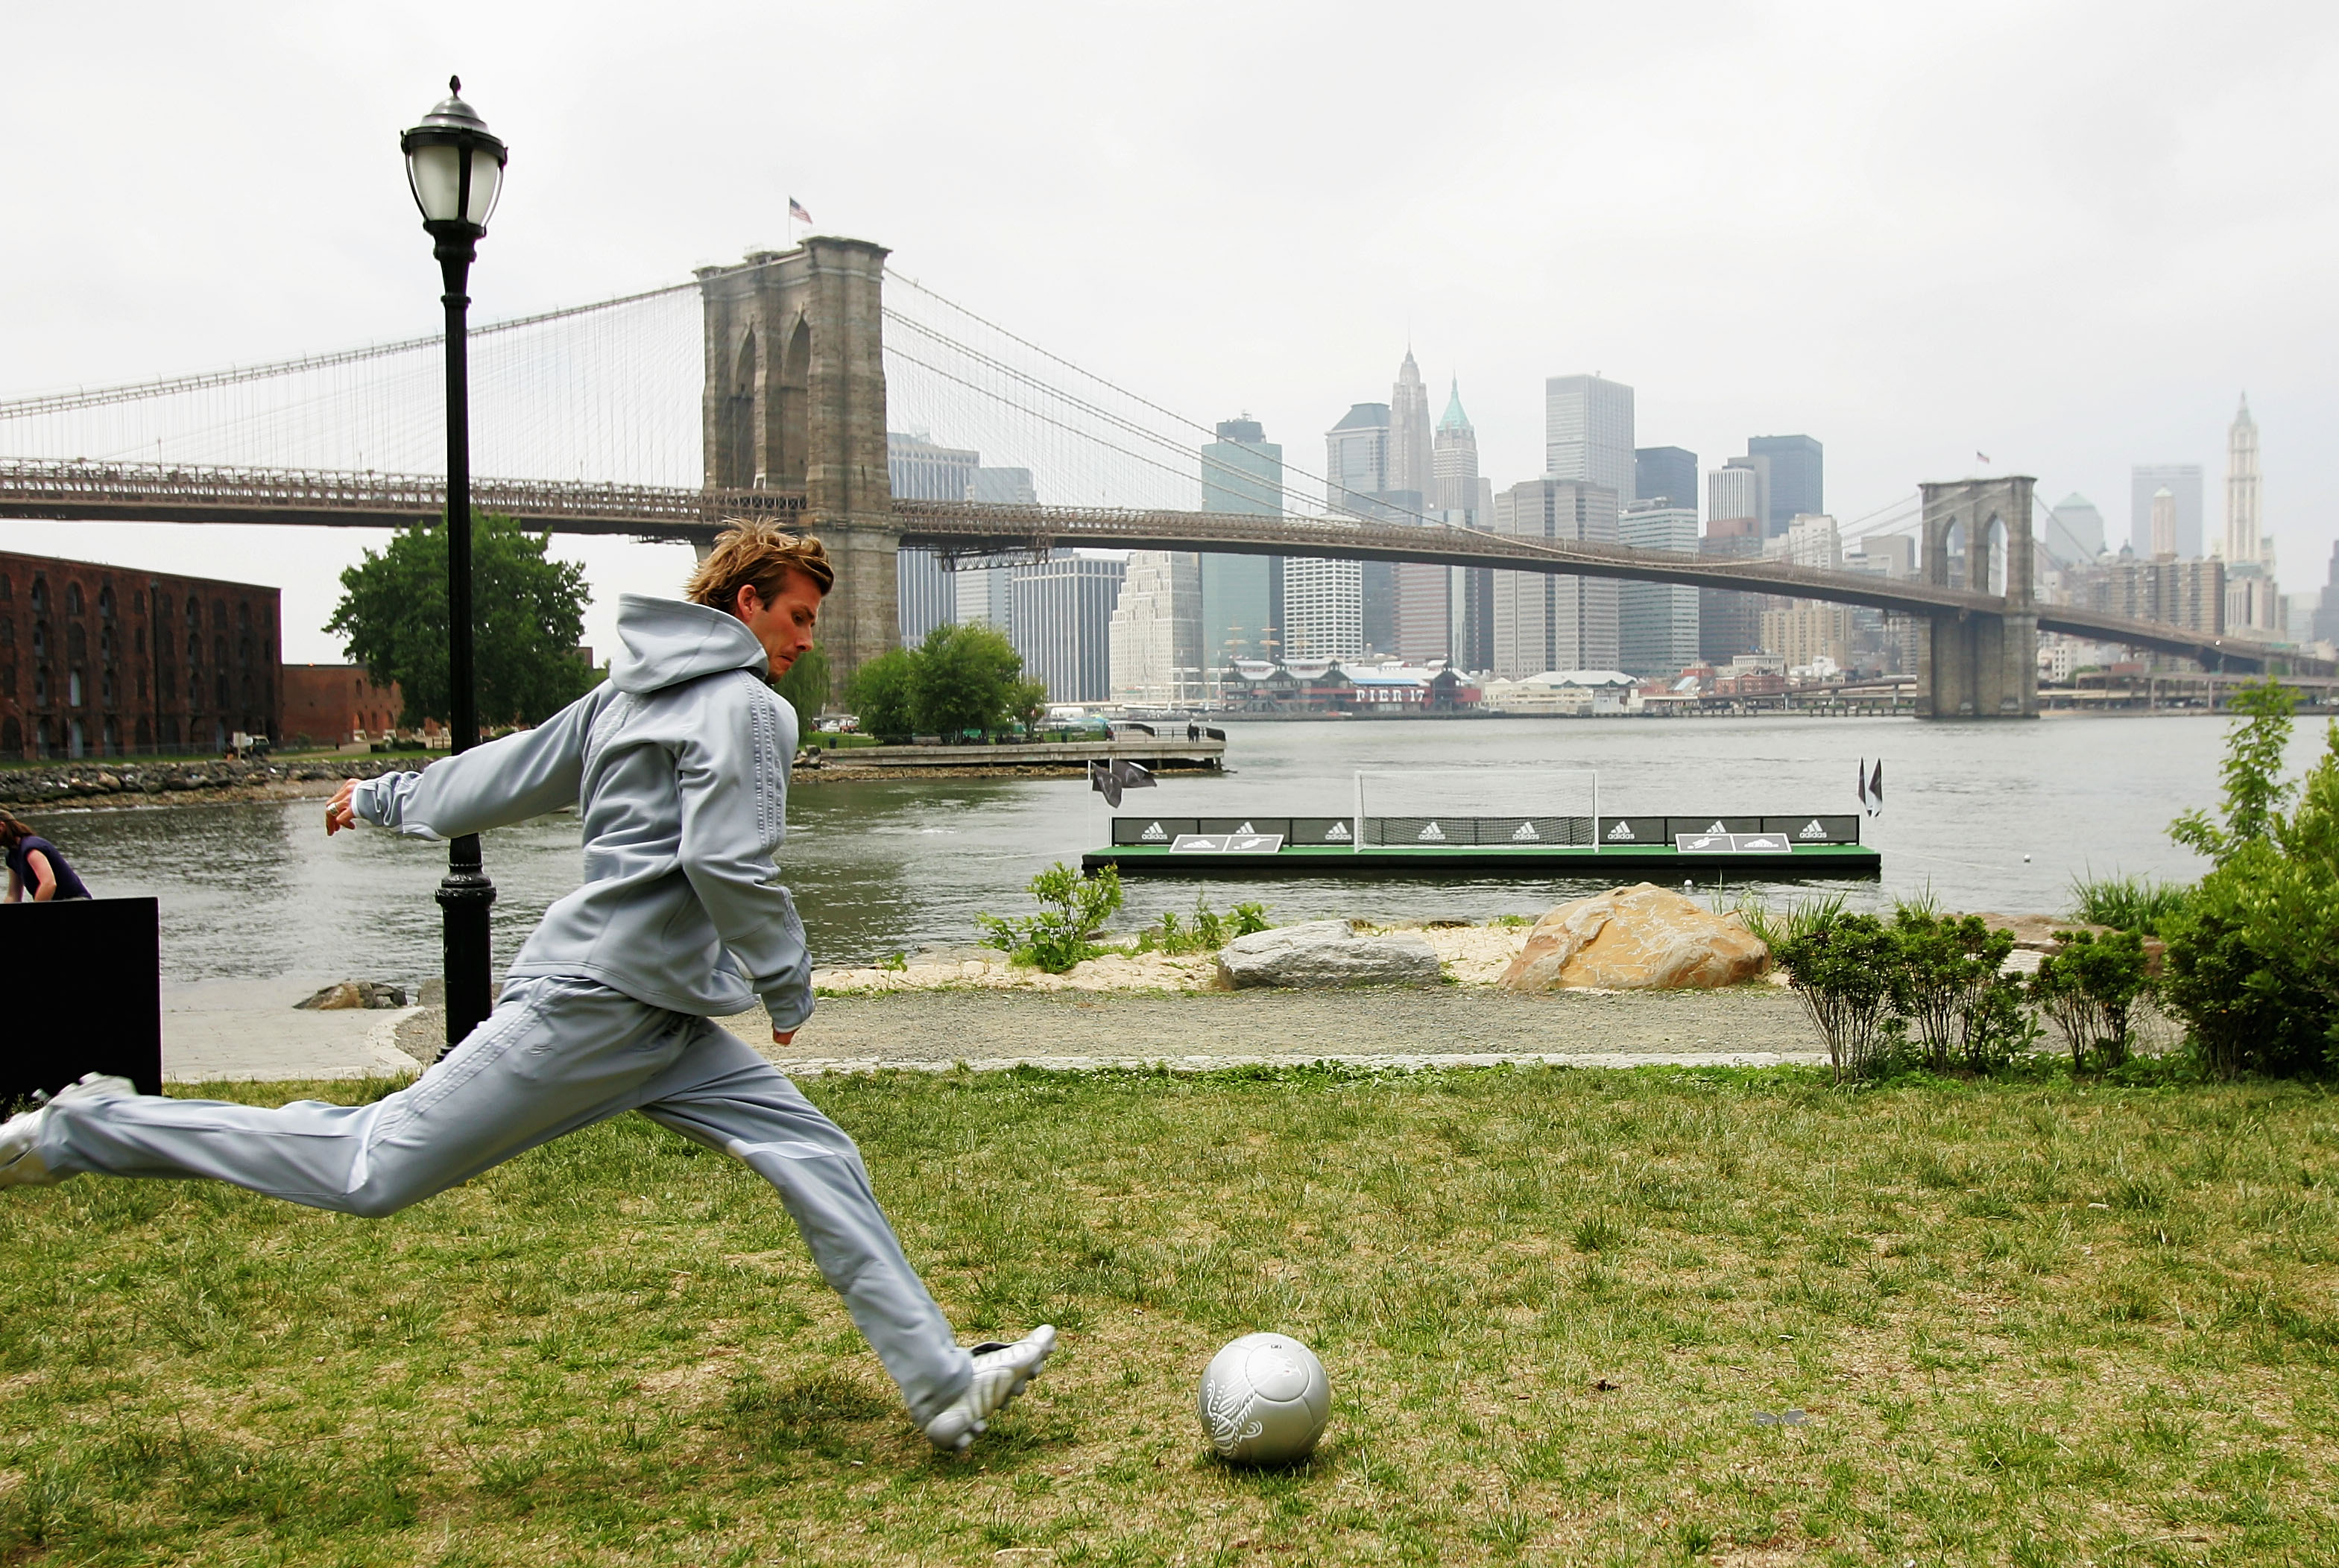 NEW YORK - JUNE 1: English soccer star David Beckham kicks soccer balls towards a goal set up on a raft in the East River, with the Brooklyn Bridge and the Manhattan skyline in the background on June 1, 2005 at the Brooklyn Bridge Park in the Brooklyn borough of New York City. (Photo by Ezra Shaw/Getty Images for adidas)